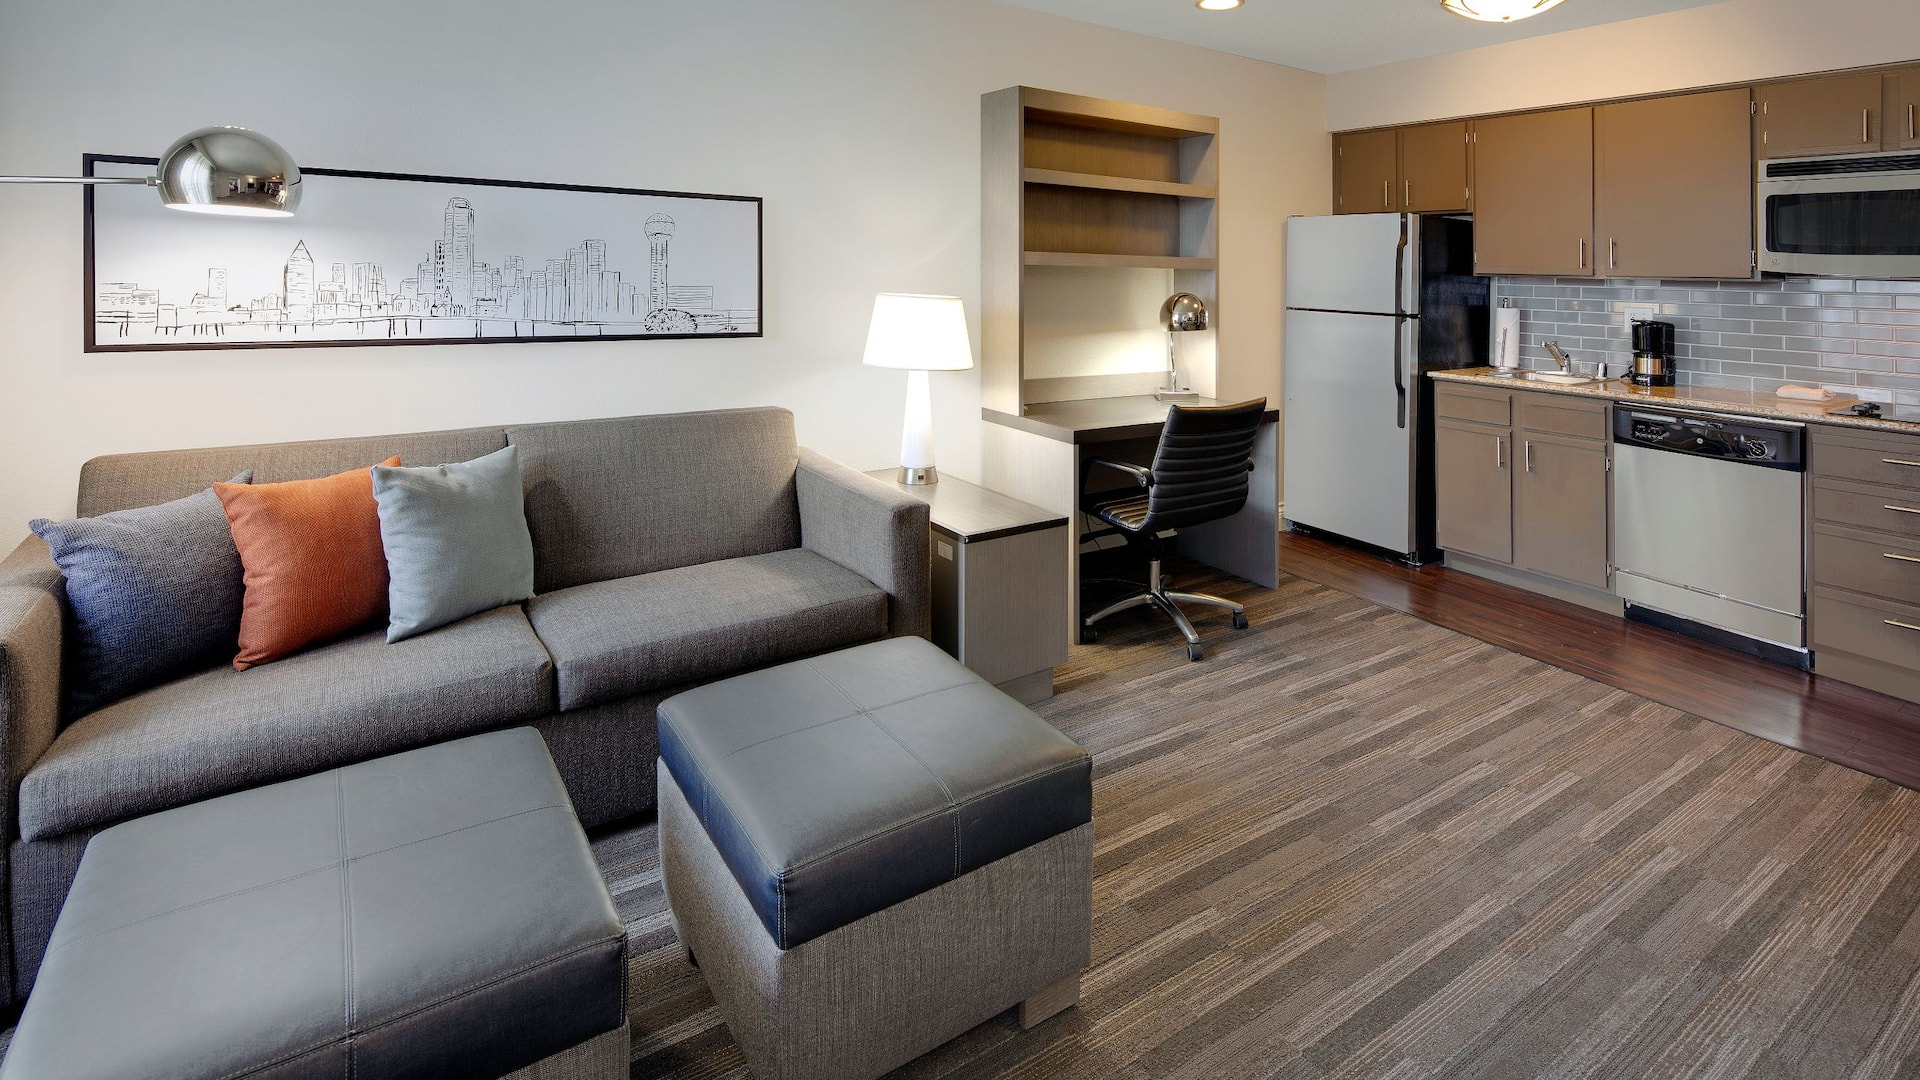 Hyatt House Dallas Richardson Rooms